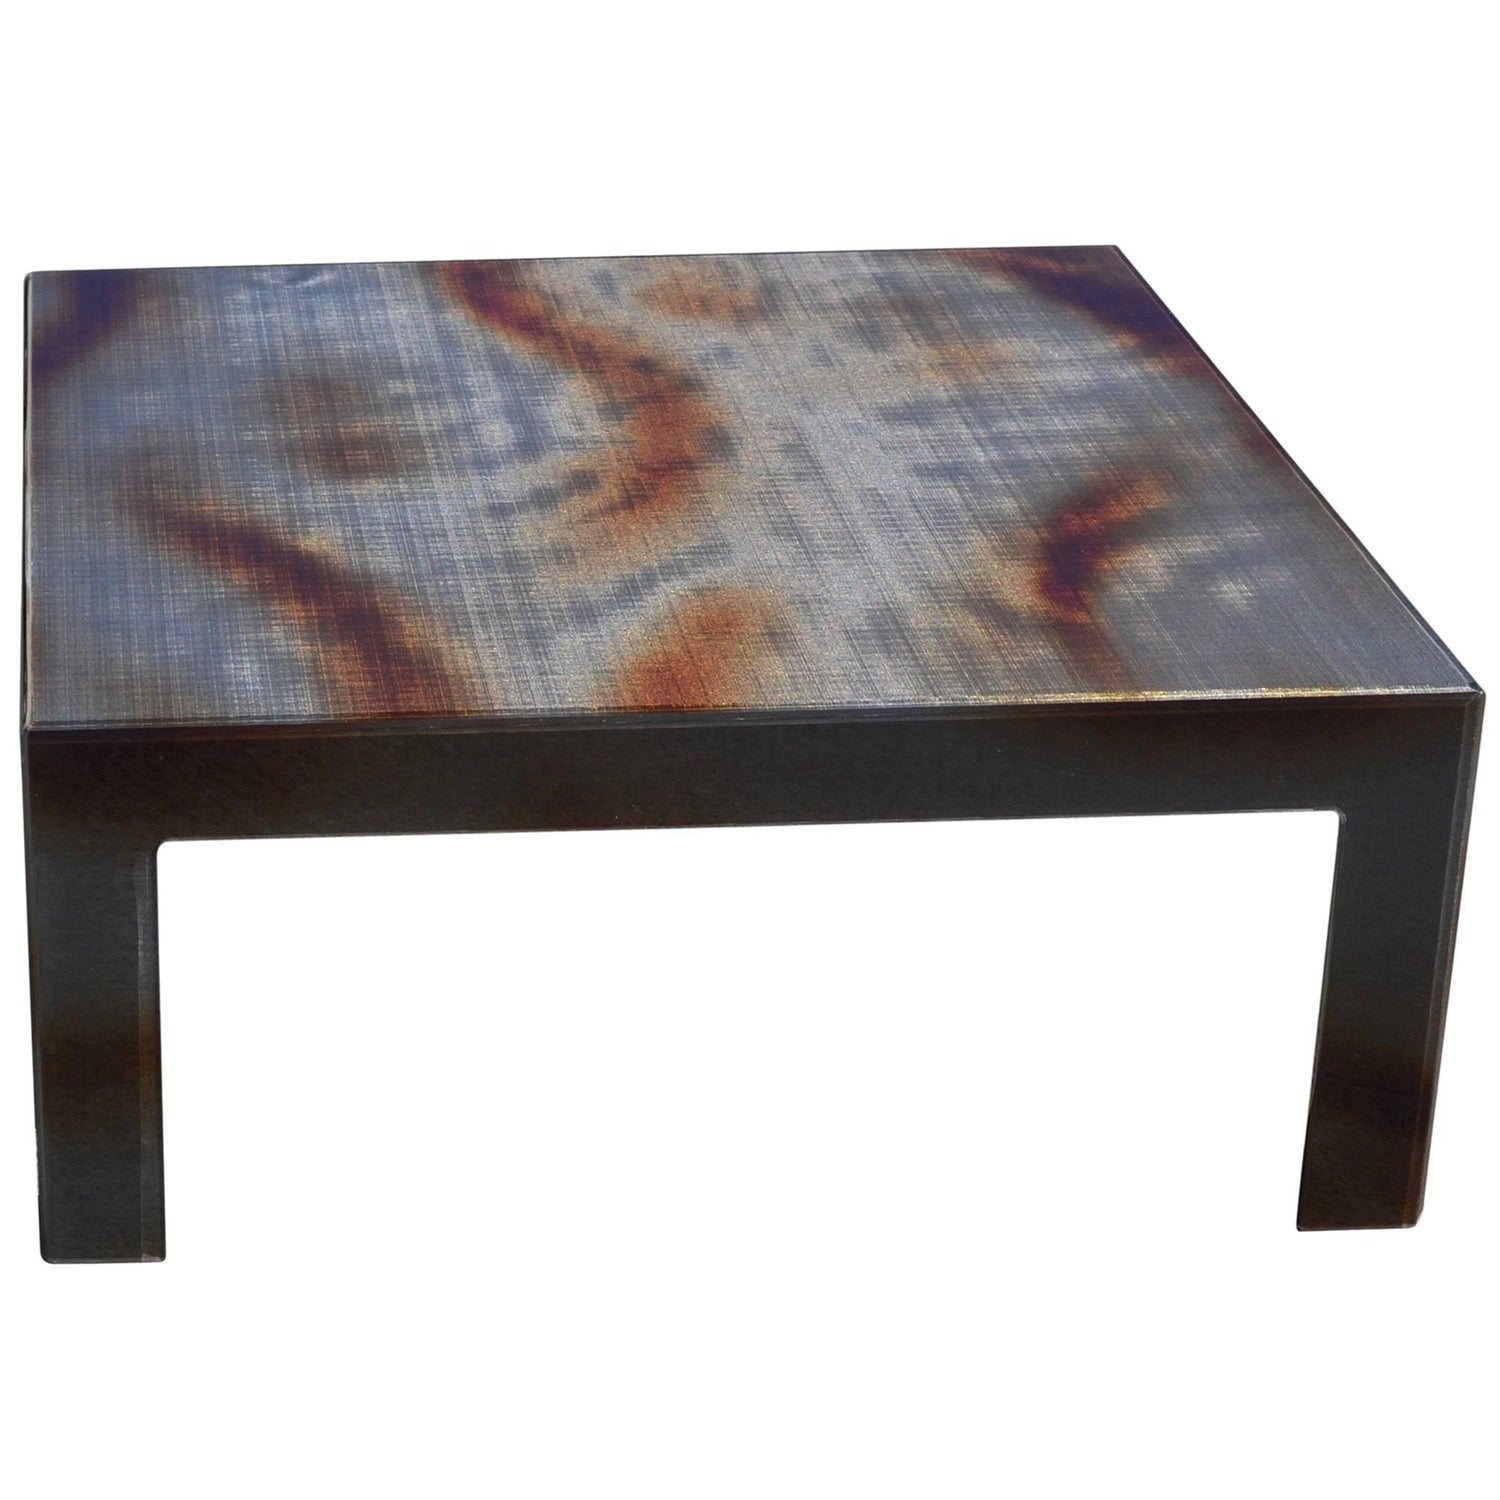 Plexiglass Tables 126 For Sale at 1stdibs